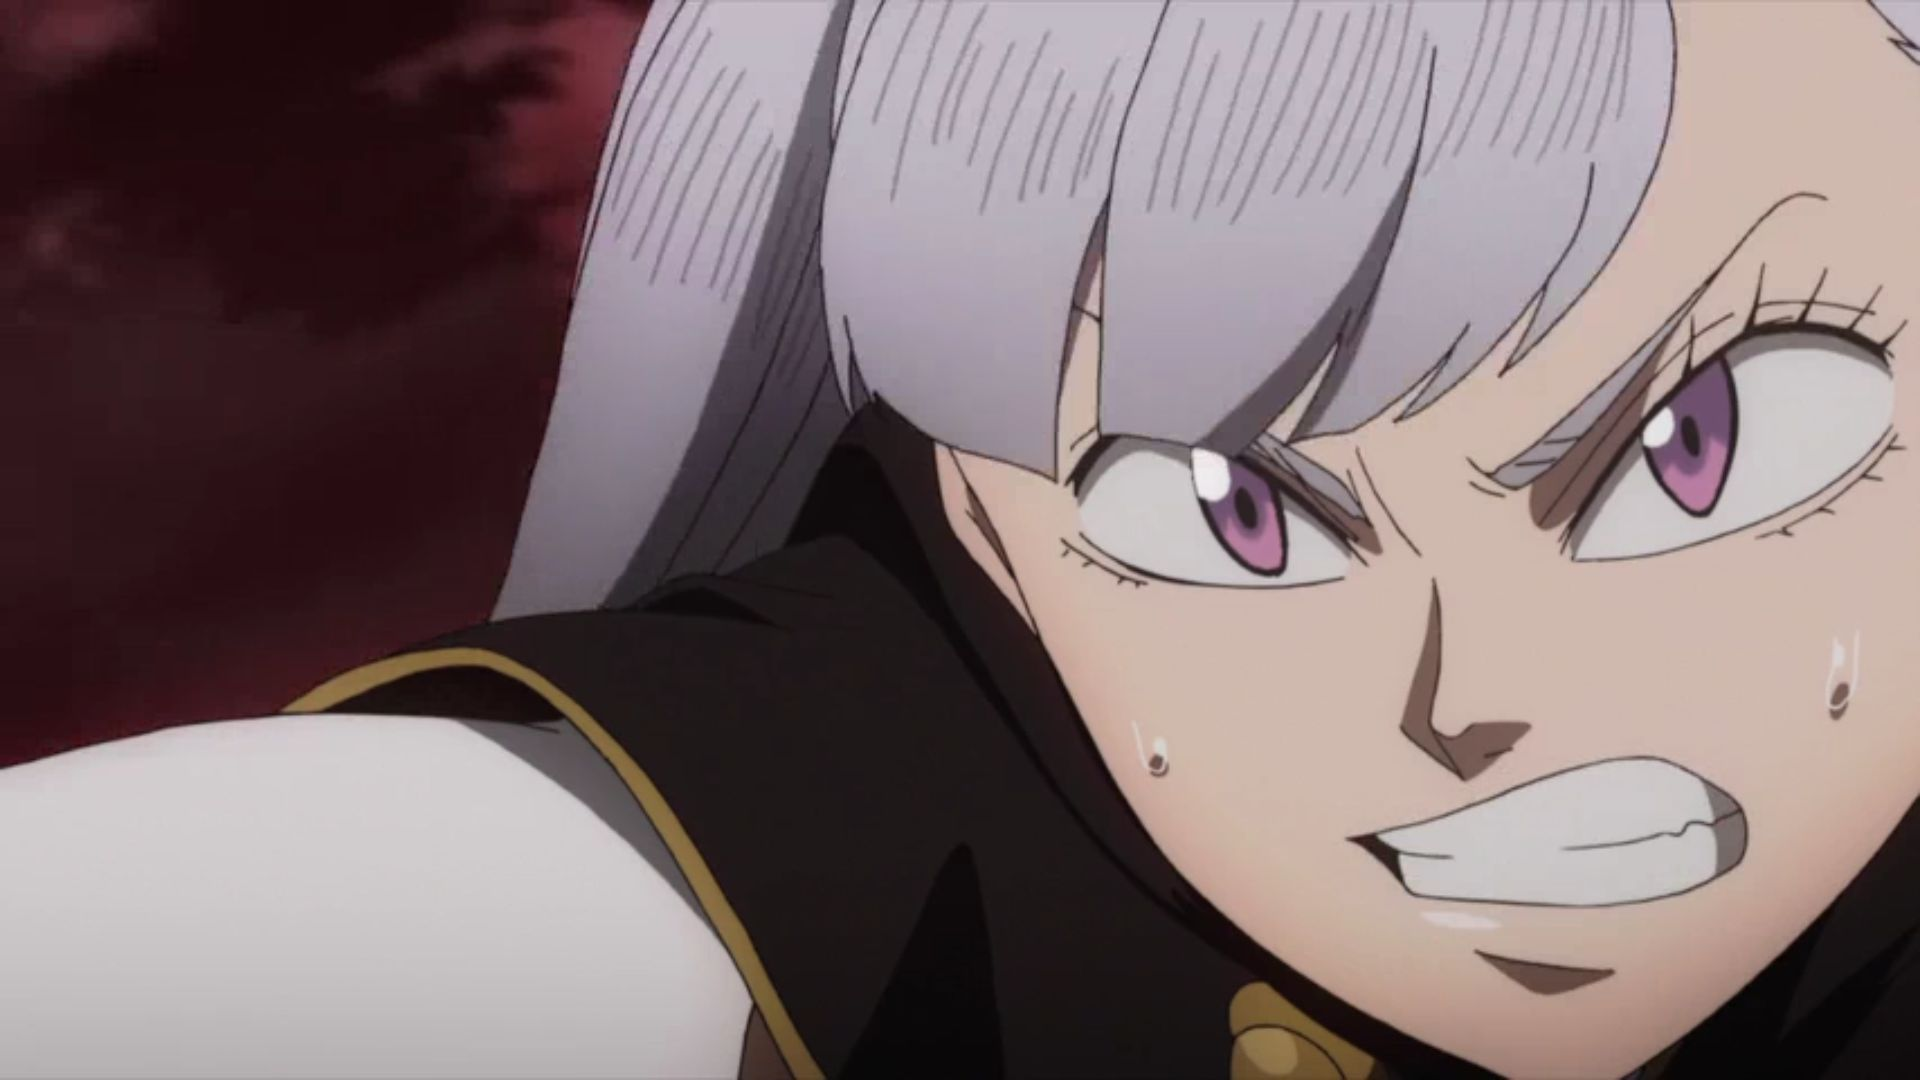 contact noelle silva black clover hd image 9 on wallpapersqq contacter amazon noelle silva black clover hd image 9 on wallpapersqq